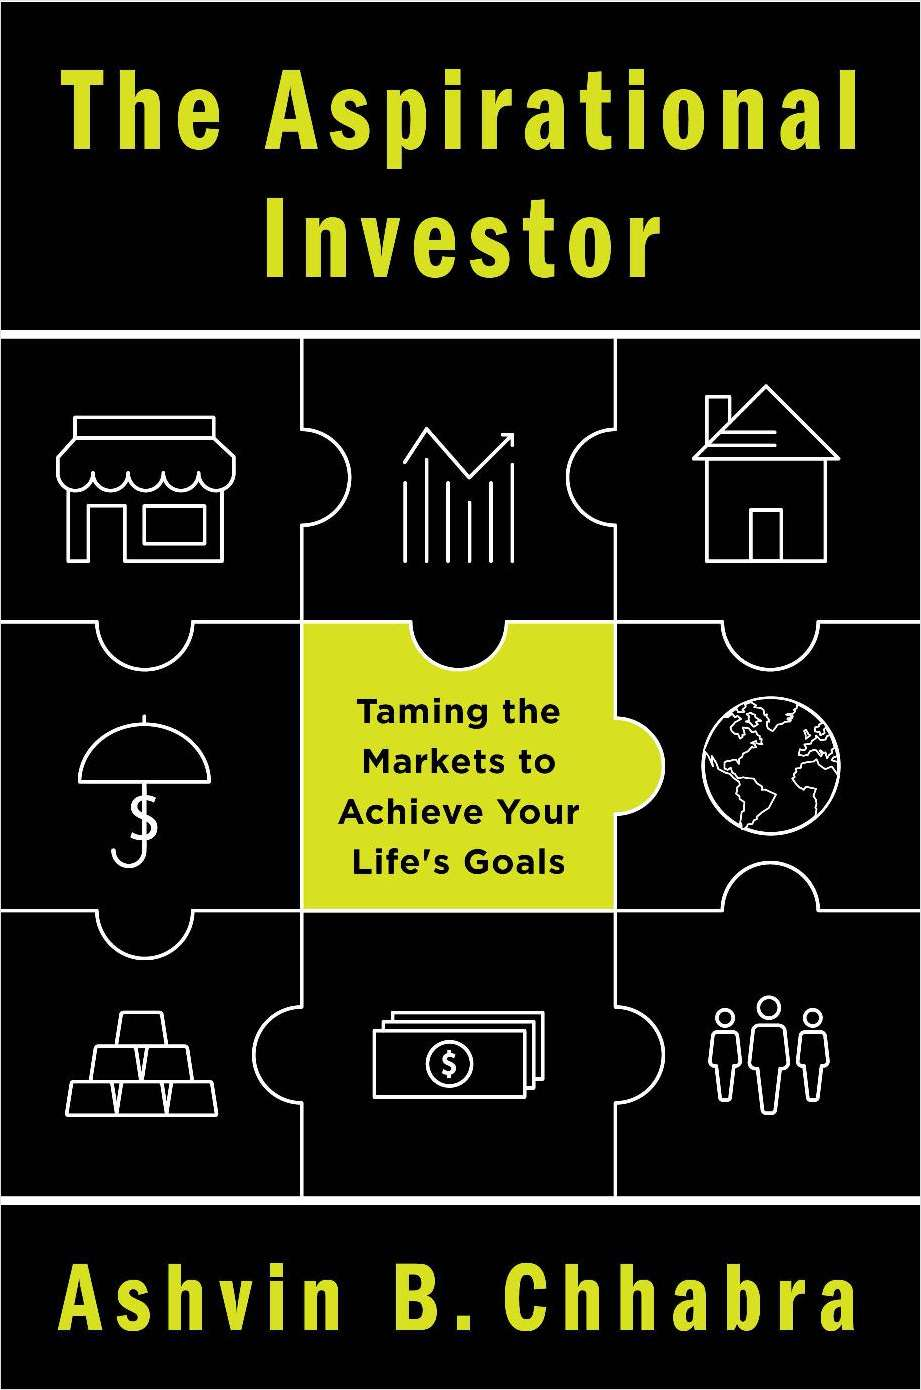 The Aspirational Investor: Taming the Markets to Achieve Your Life's Goals (Exclusive Sneak Peak Sampler!)